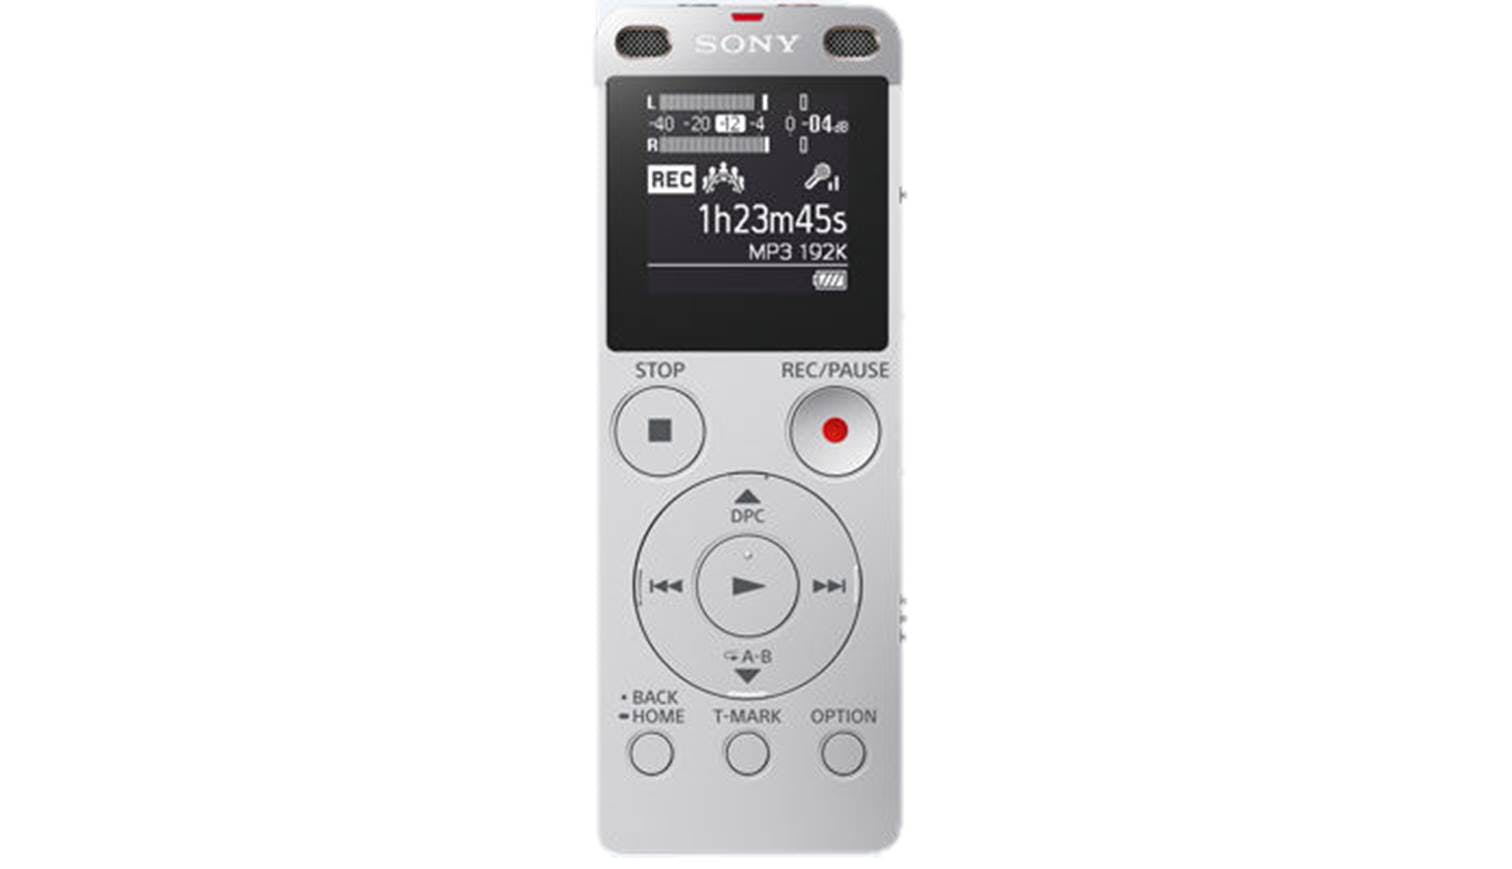 Sony ICD-UX560F Voice Recorder - Silver | Harvey Norman ...